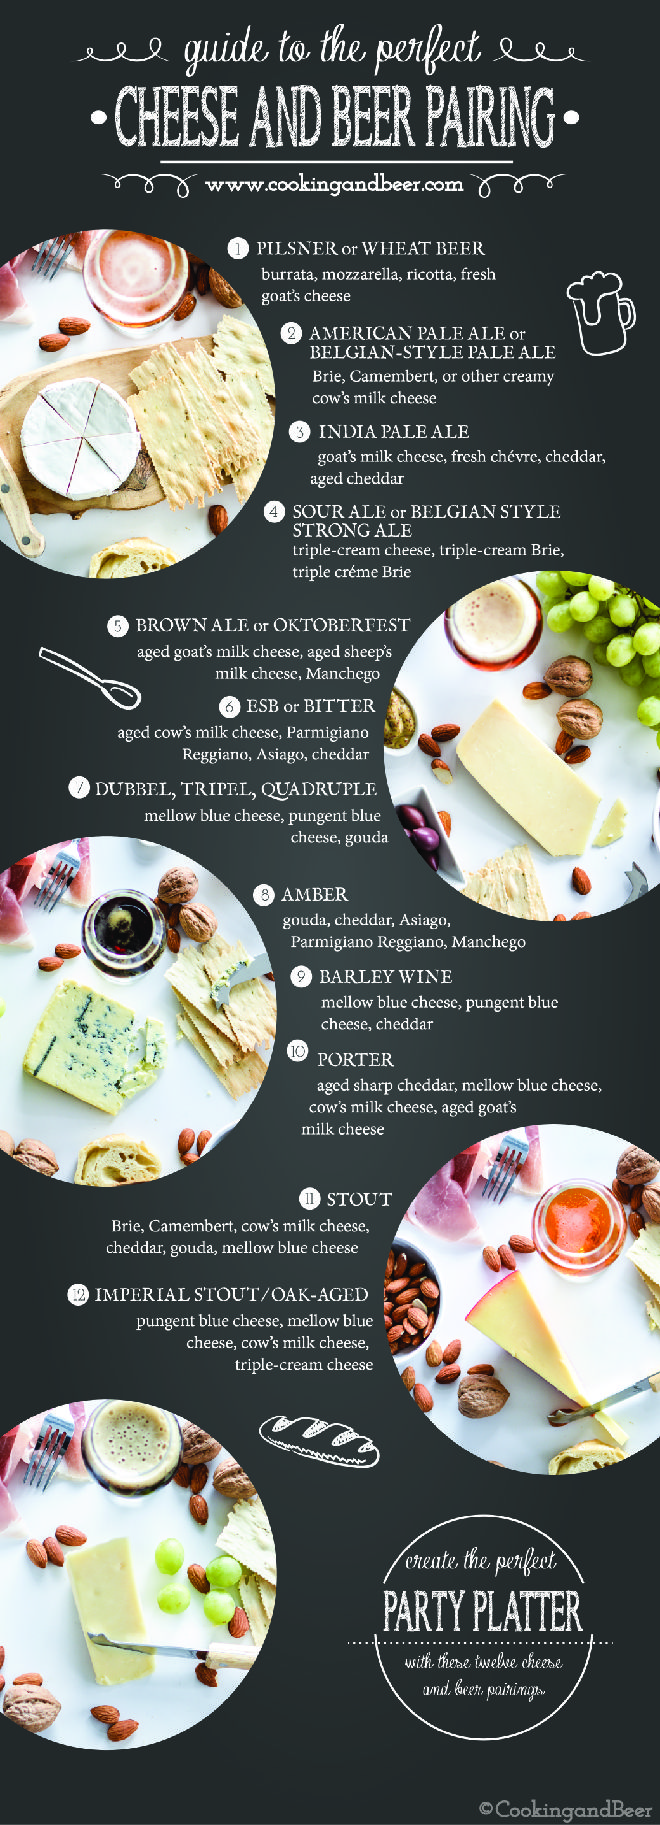 A Guide to the Perfect Beer and Cheese Pairings | www.cookingandbeer.com #appetizer #partyfood #beer